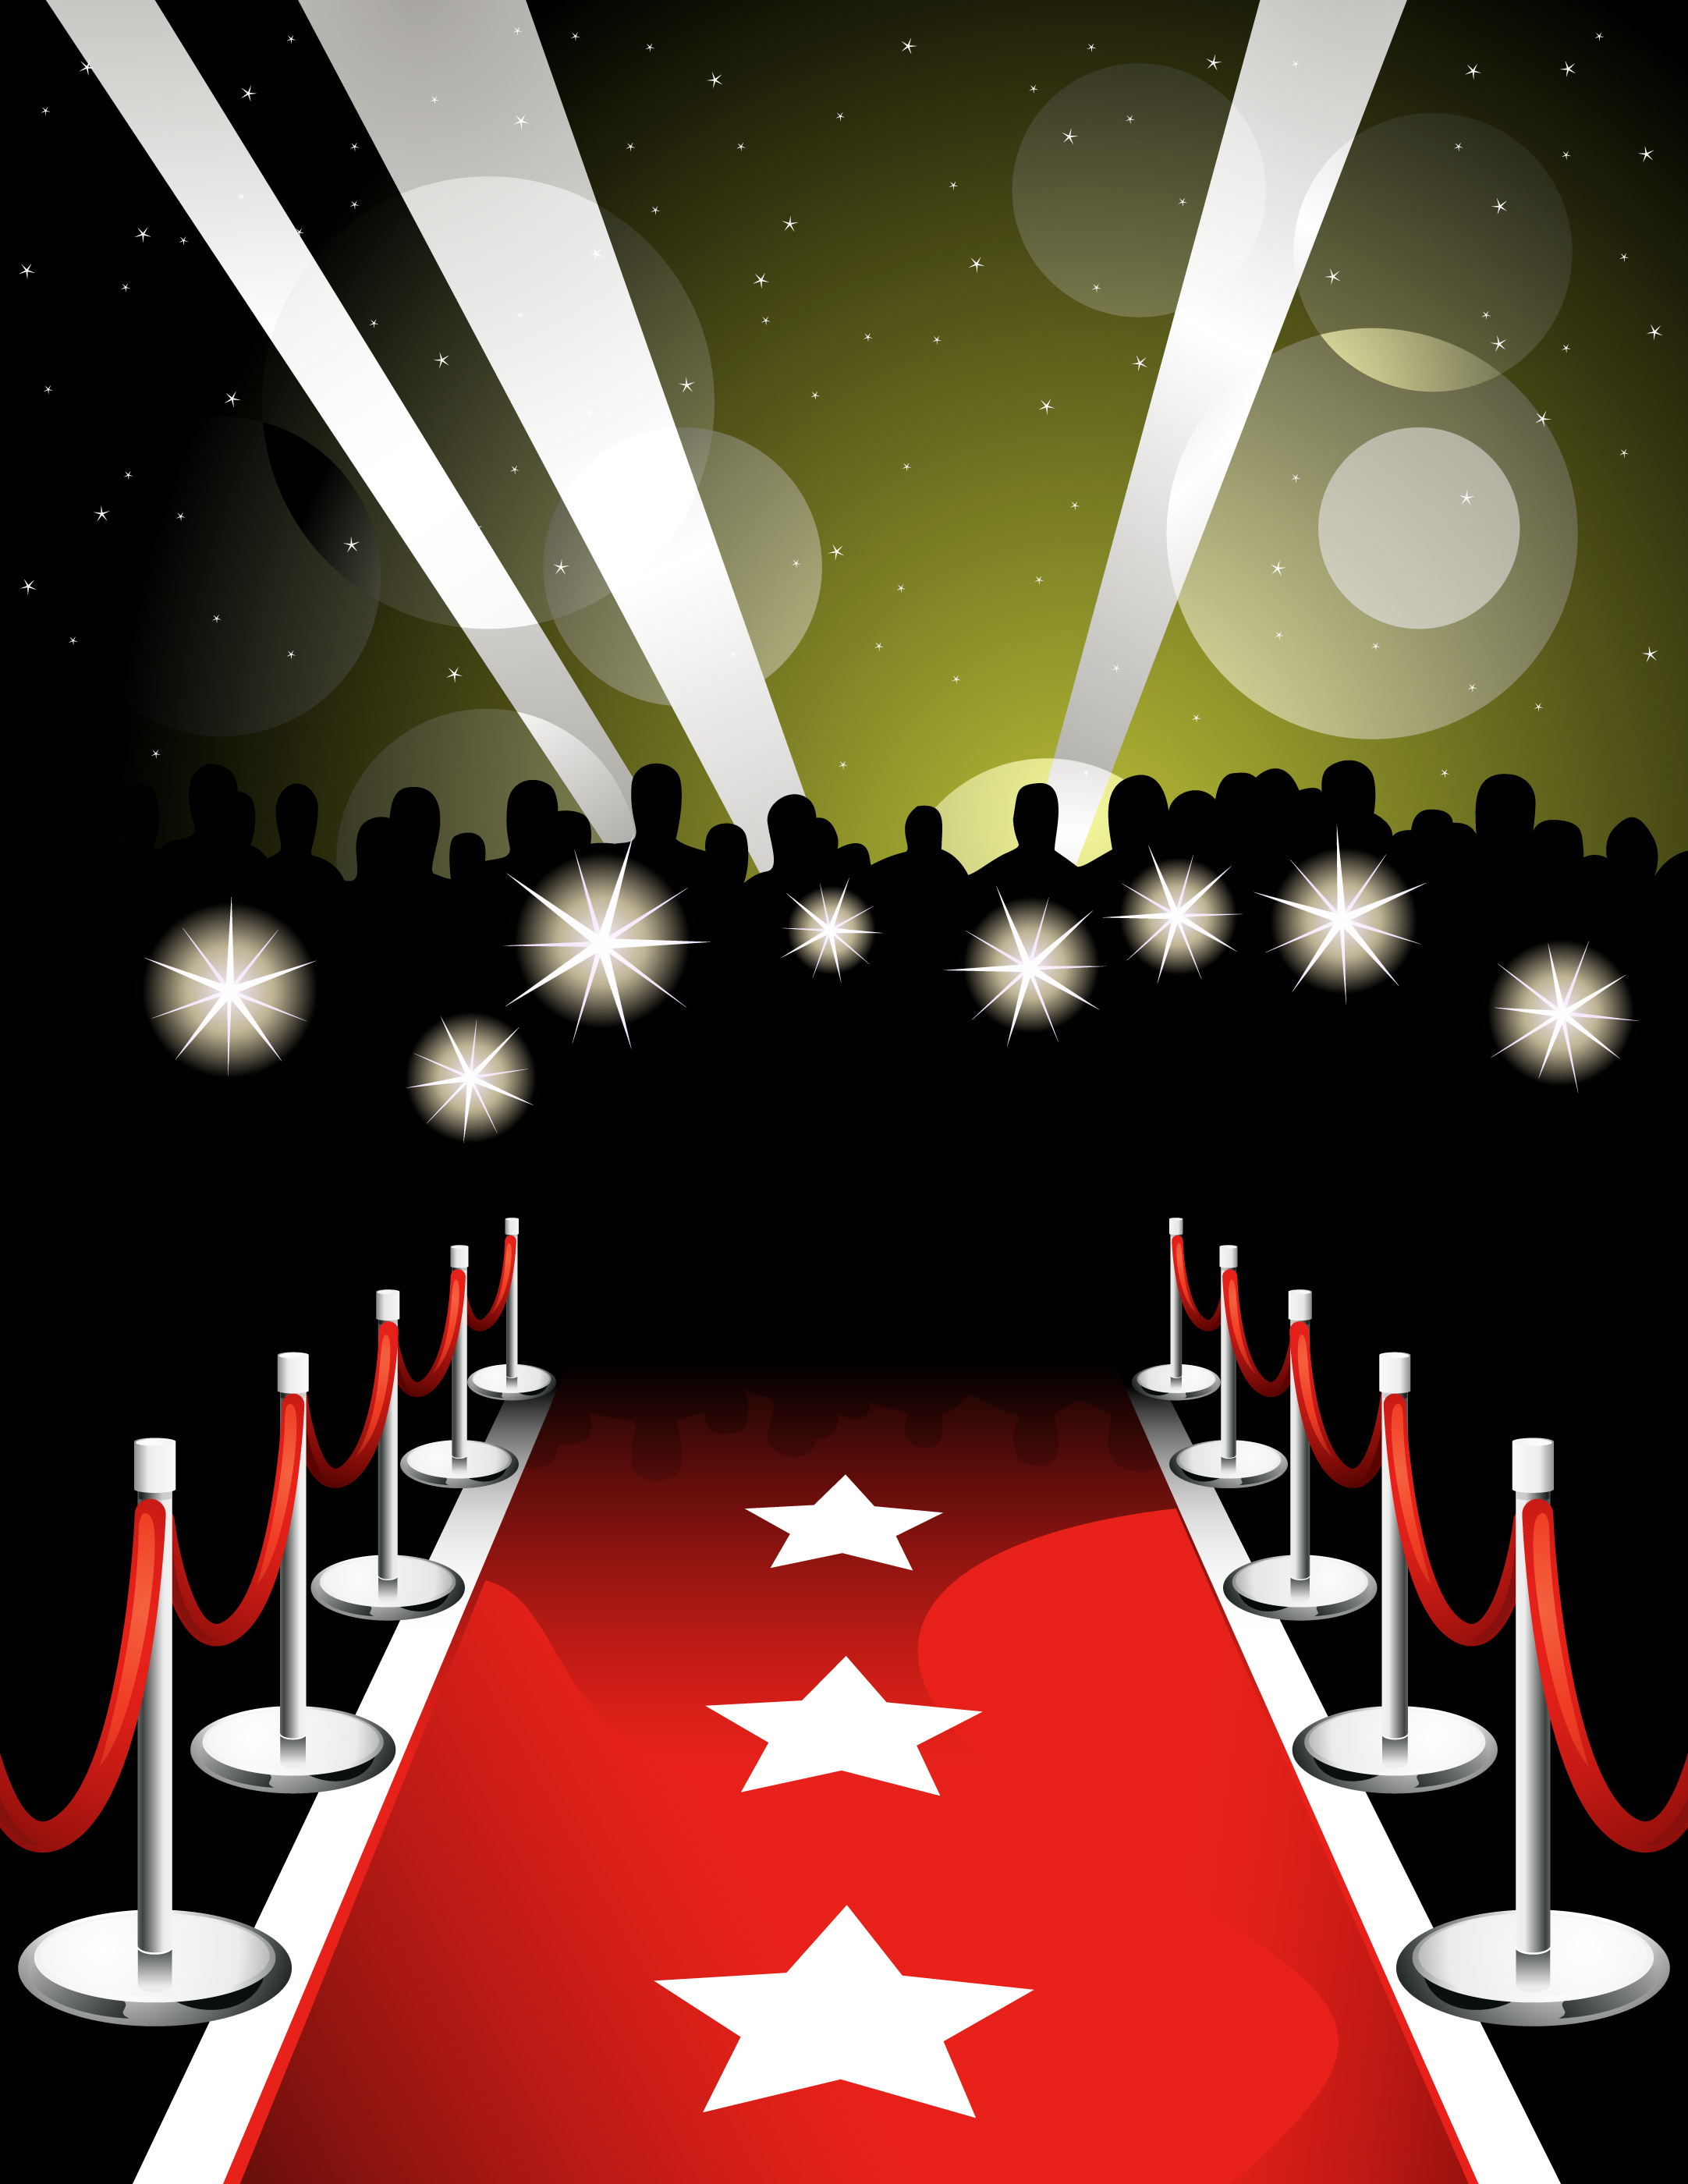 Red Carpet Clipart.